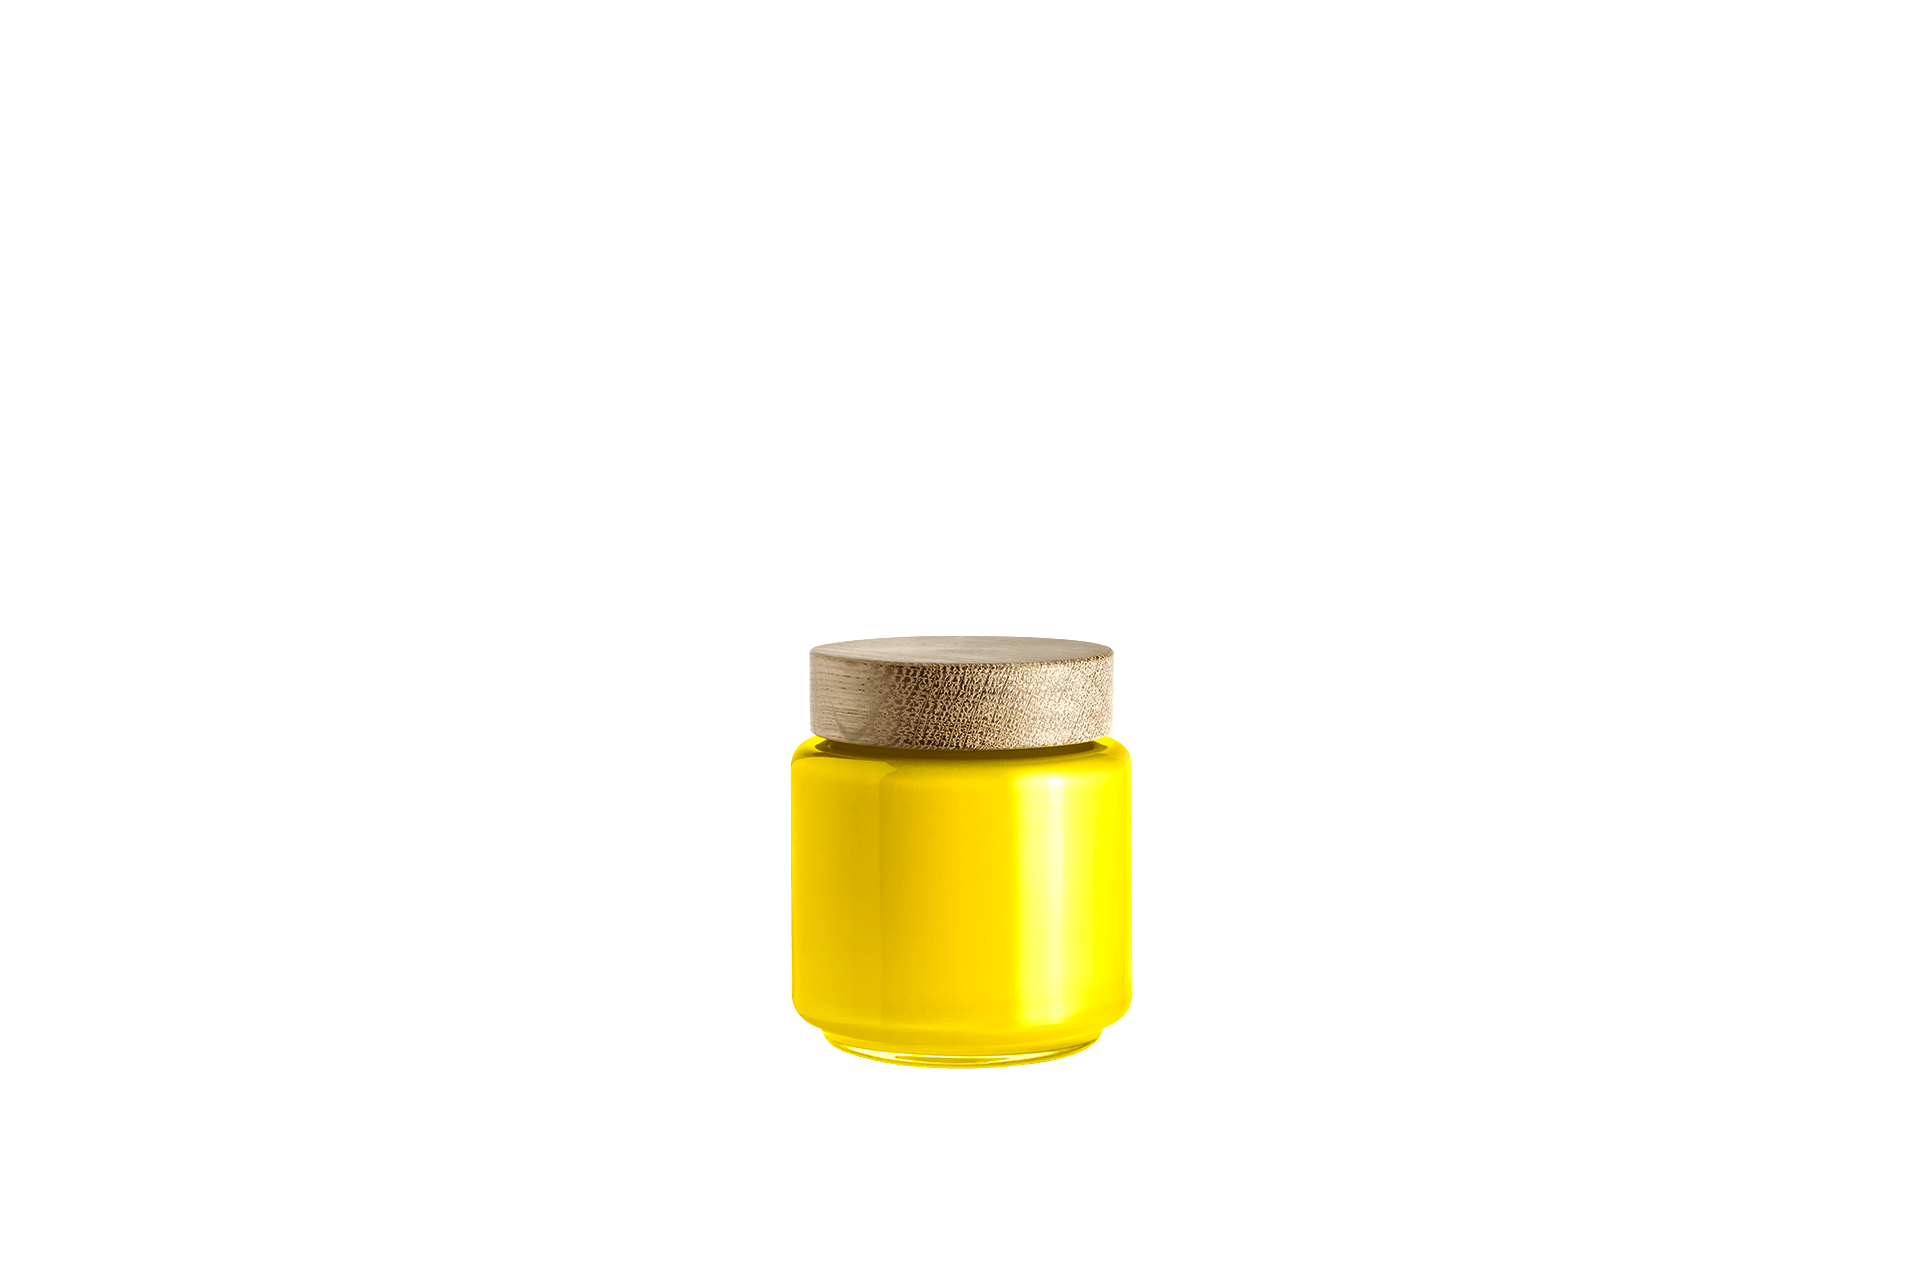 Bocal verre soufflé jaune 0.5L PALET JAR by Holmegaard-PARIDEO design durable